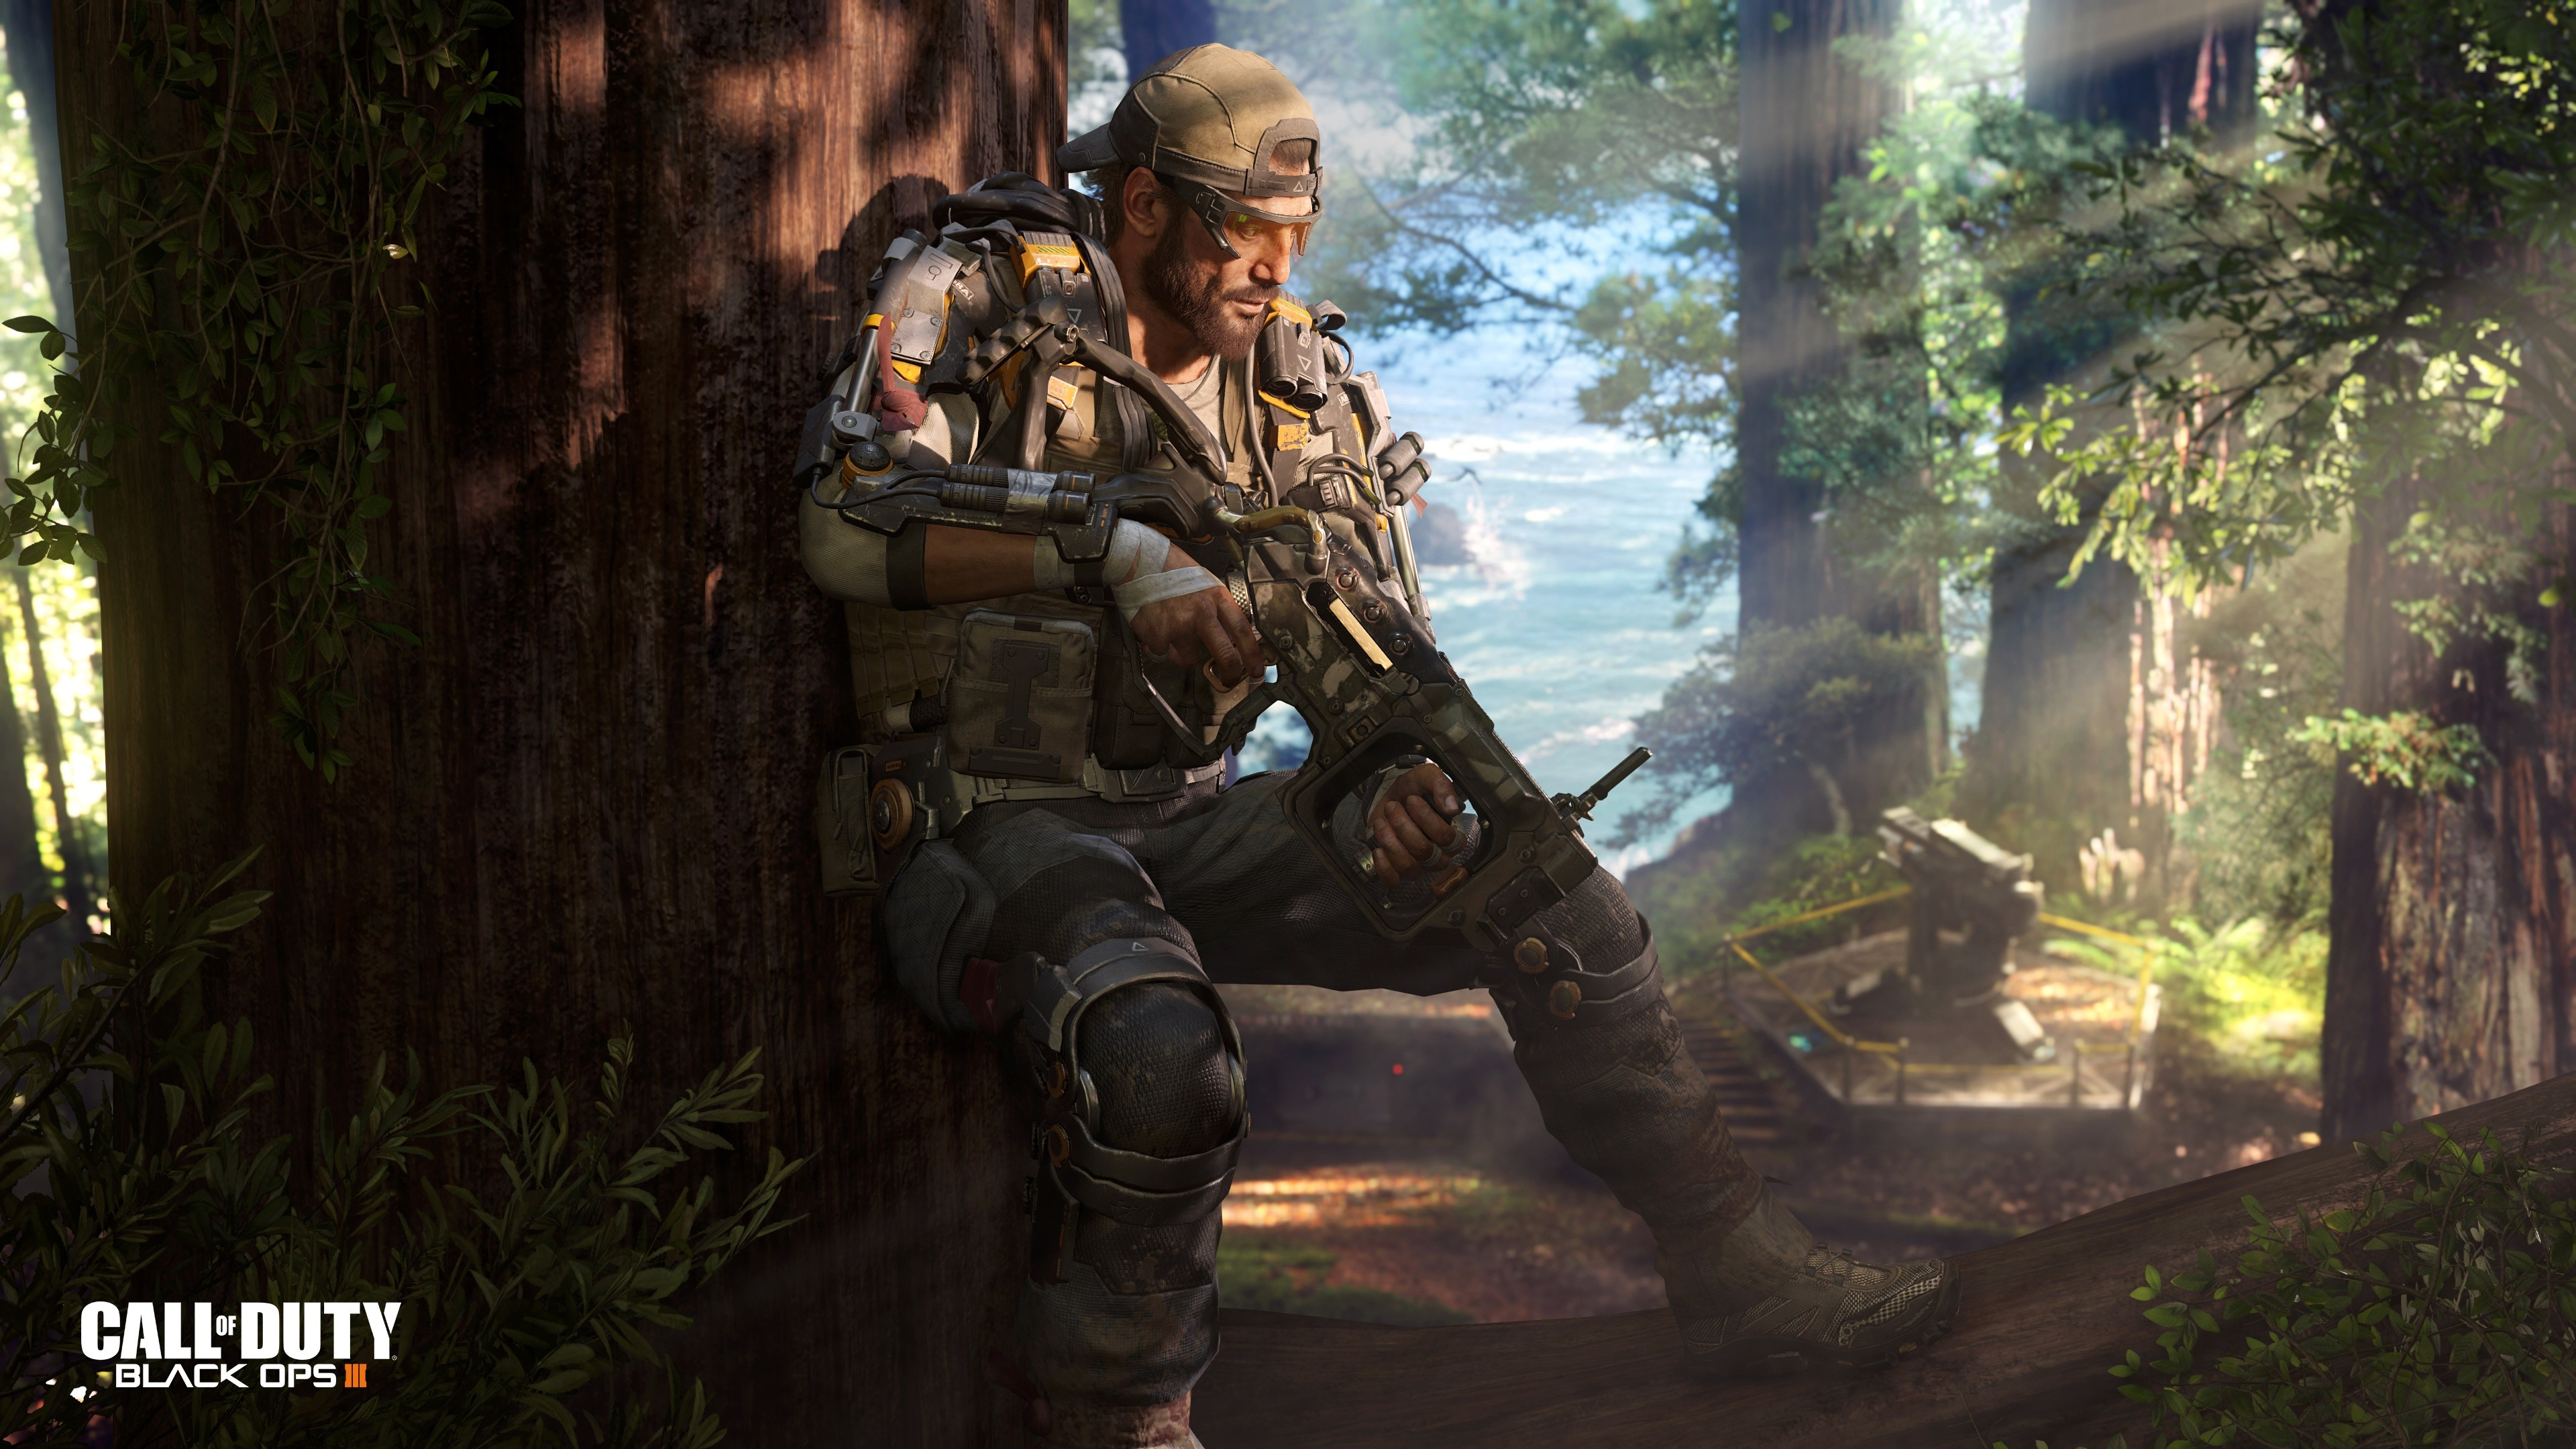 Res: 3840x2160, Call of Duty Black Ops 3 Specialist Nomad